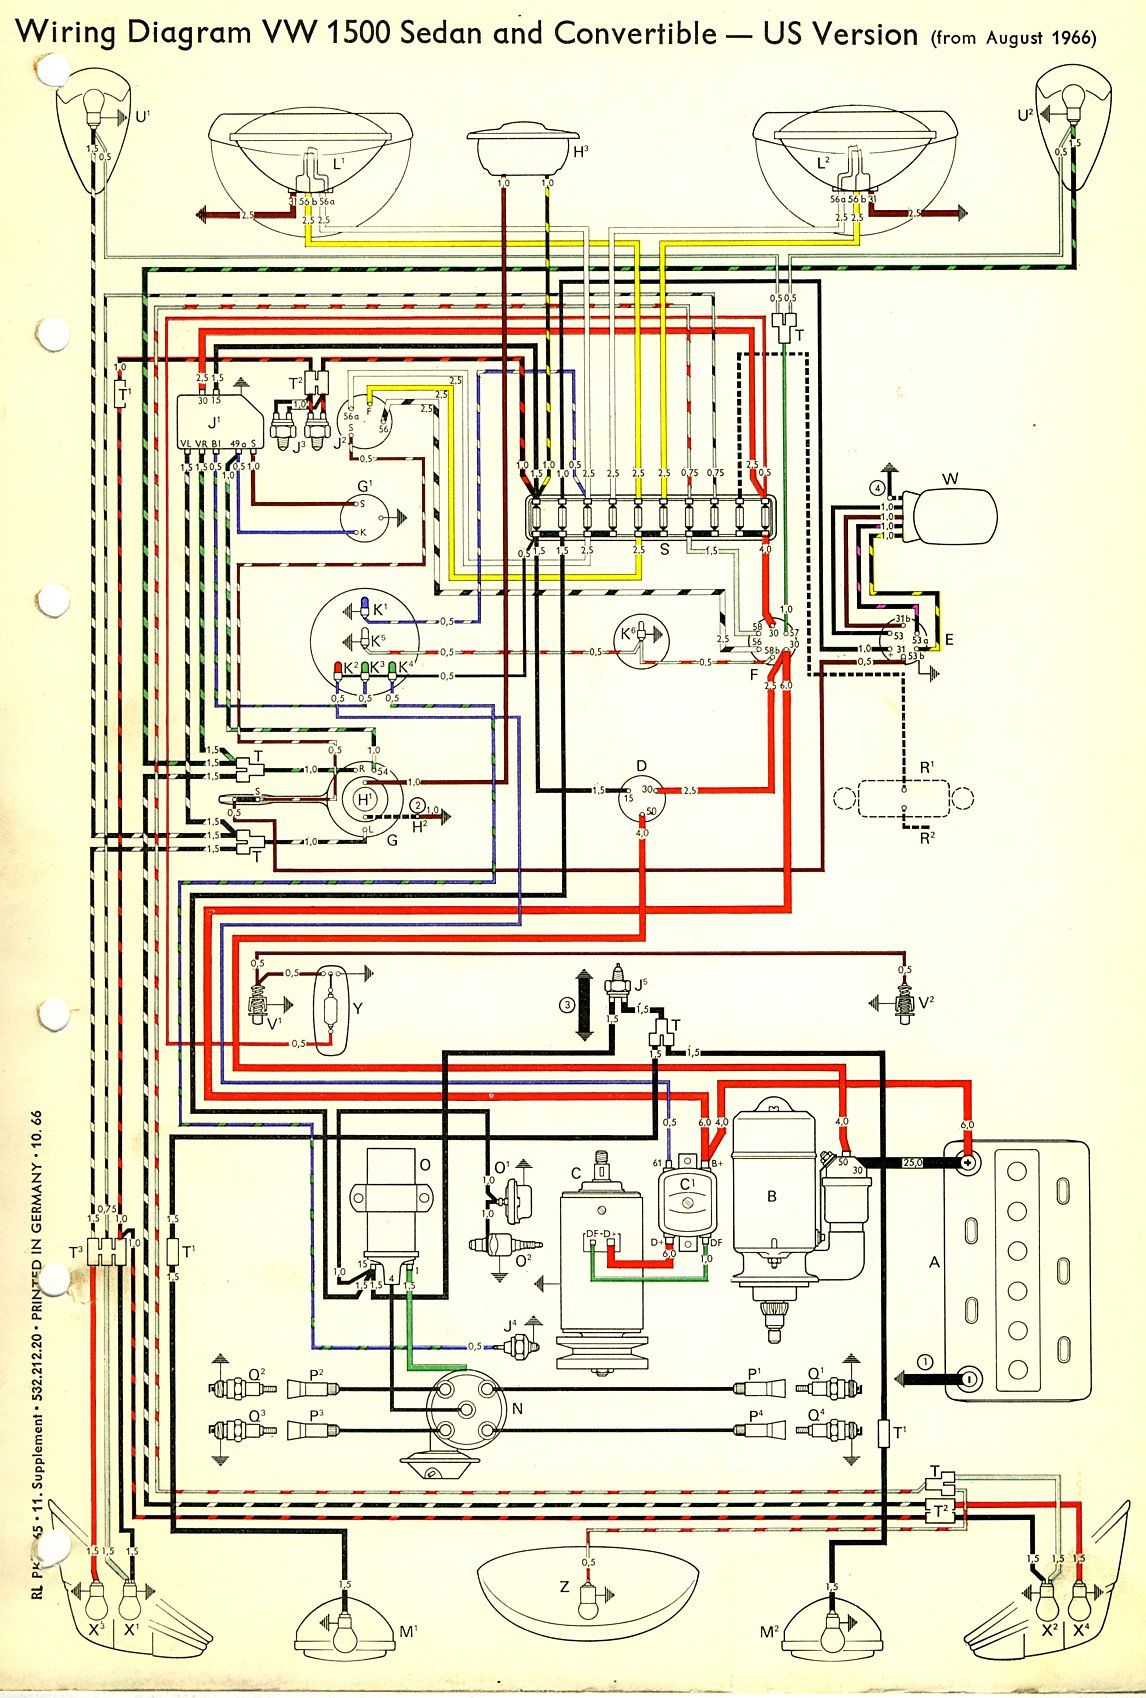 Beetle wiring diagram usa thegoldenbug best